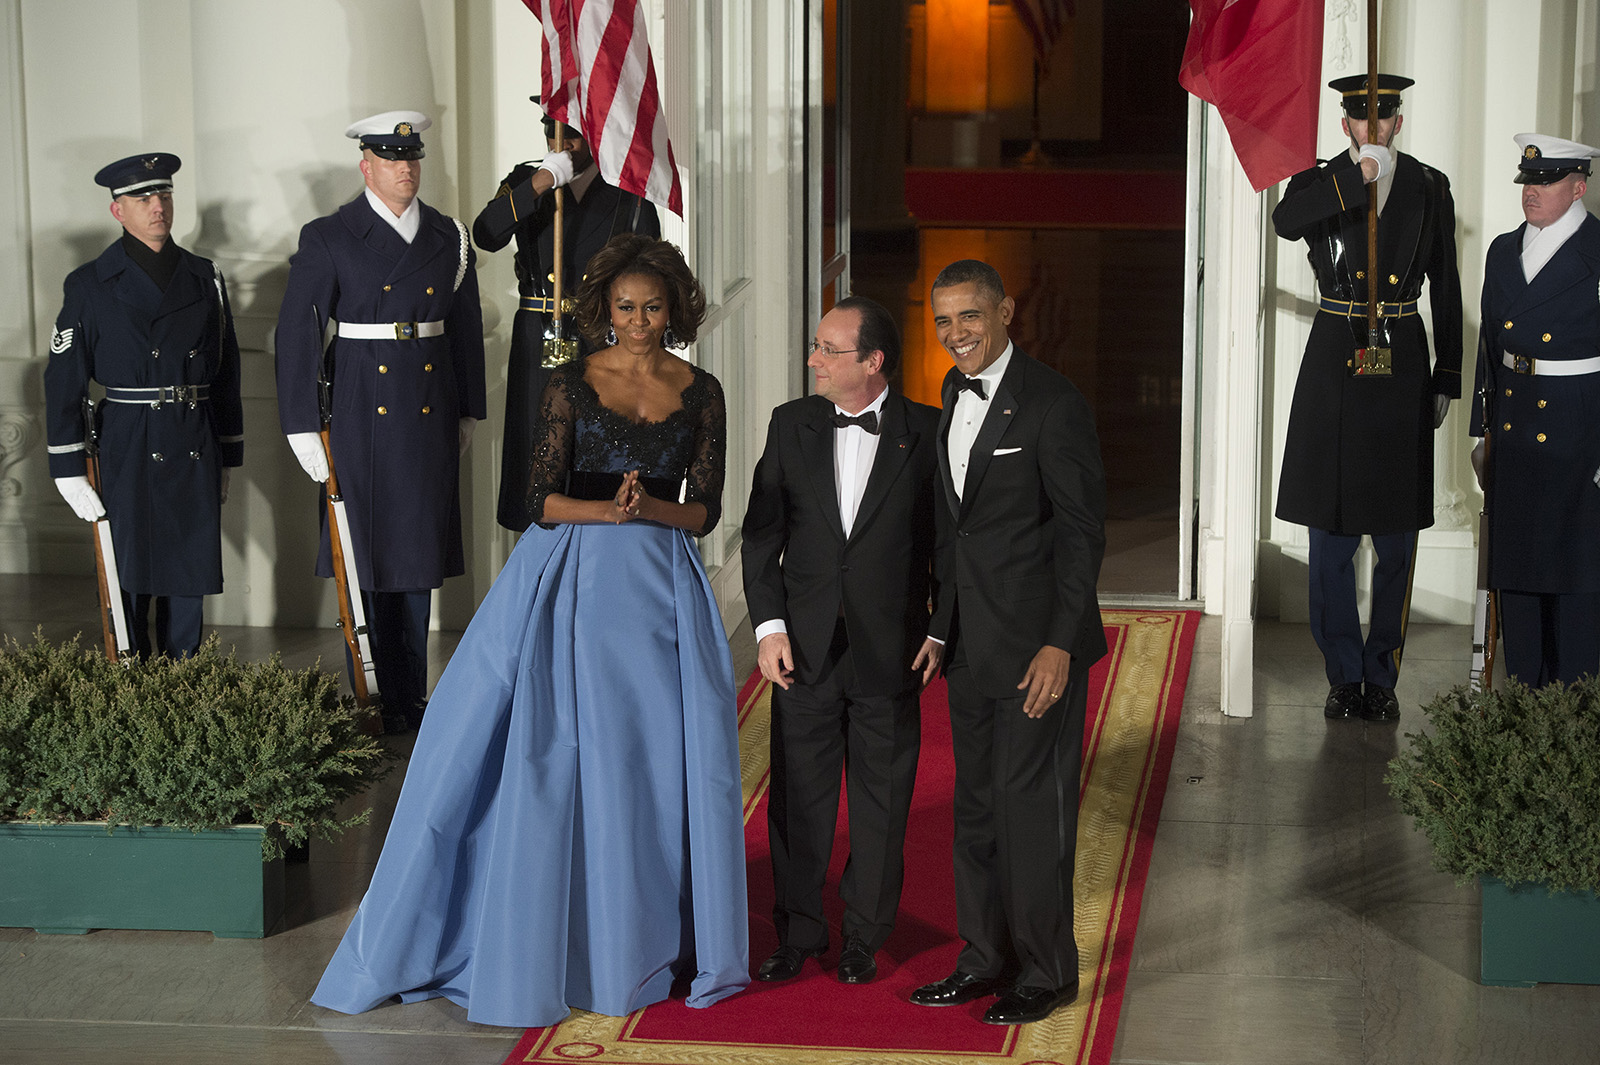 President Francois Hollande of France is greeted by First Lady Michelle Obama and President Barack Obama as he arrives at the North Portico for a State Dinner at the White House in Washington, D.C., on Tuesday, February 11, 2014.© 2014 Nikki Kahn/The Washington Post ALL RIGHTS RESERVED